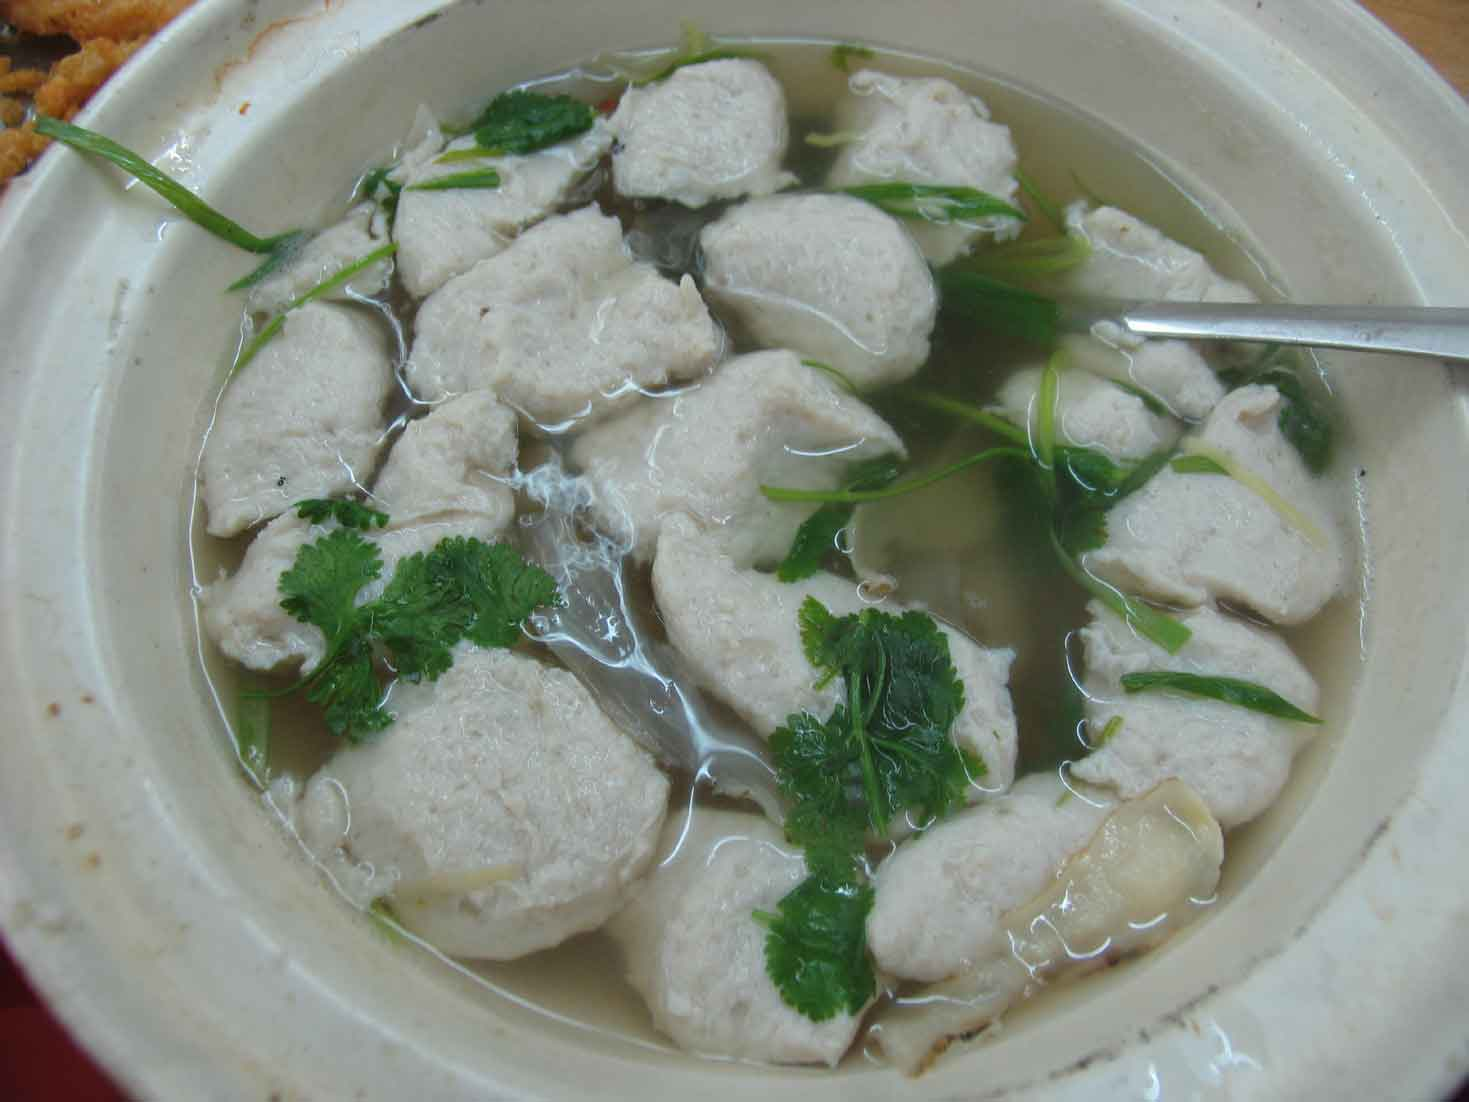 Terubong Seafood fish ball soup